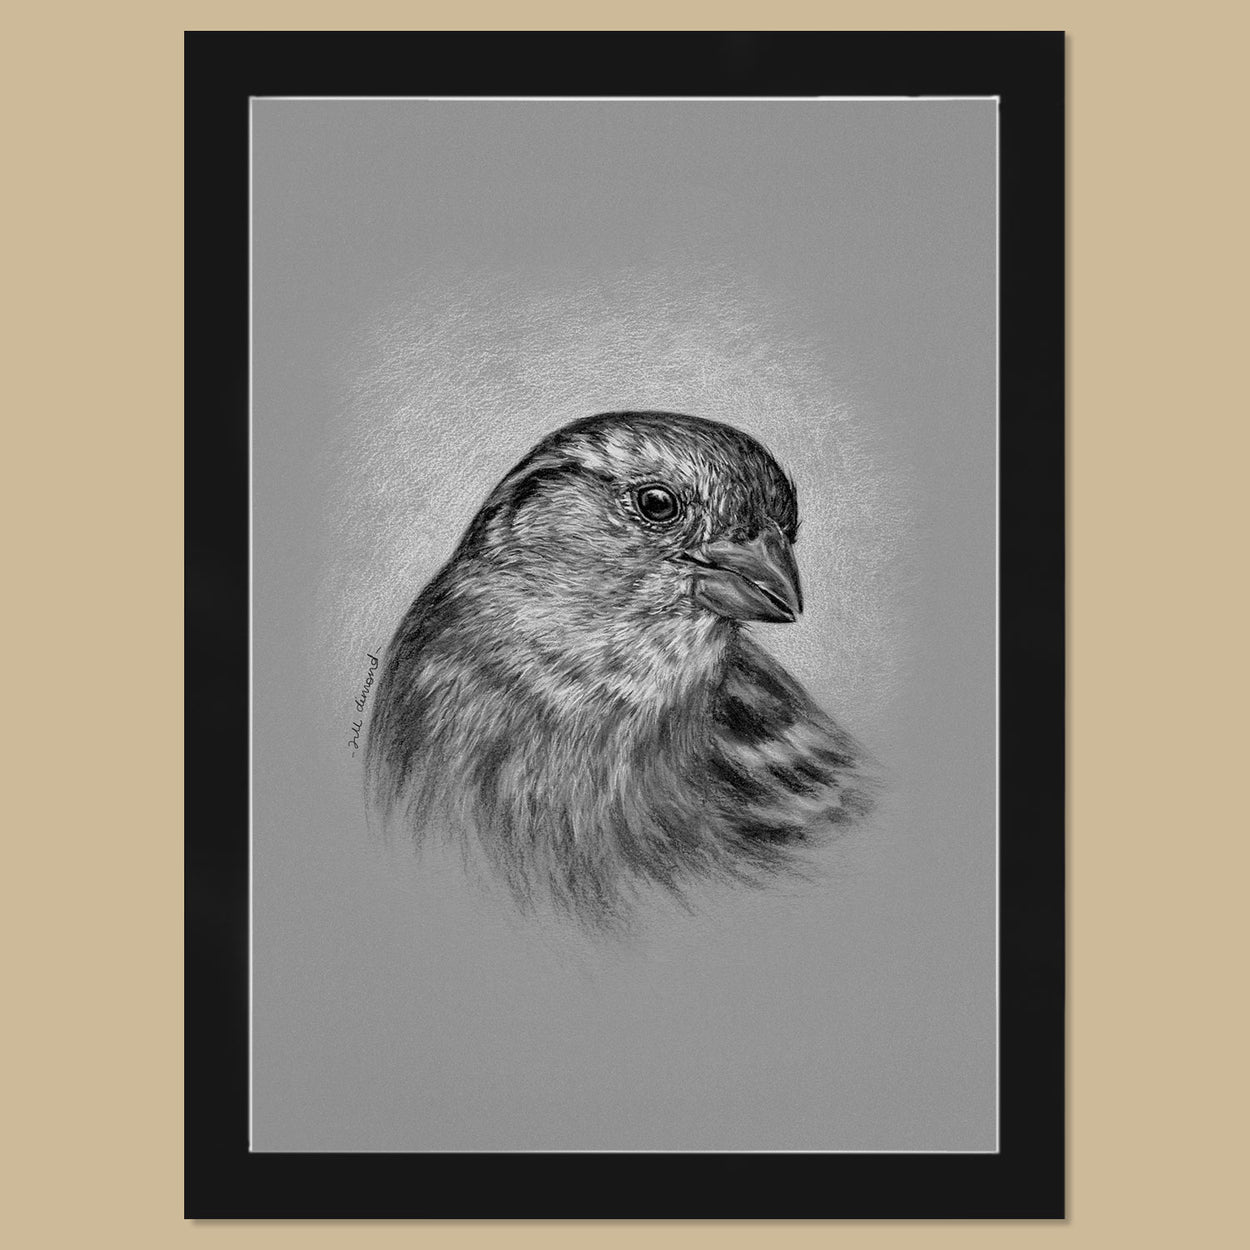 Original Female House Sparrow Charcoal Drawing - The Thriving Wild - Jill Dimond